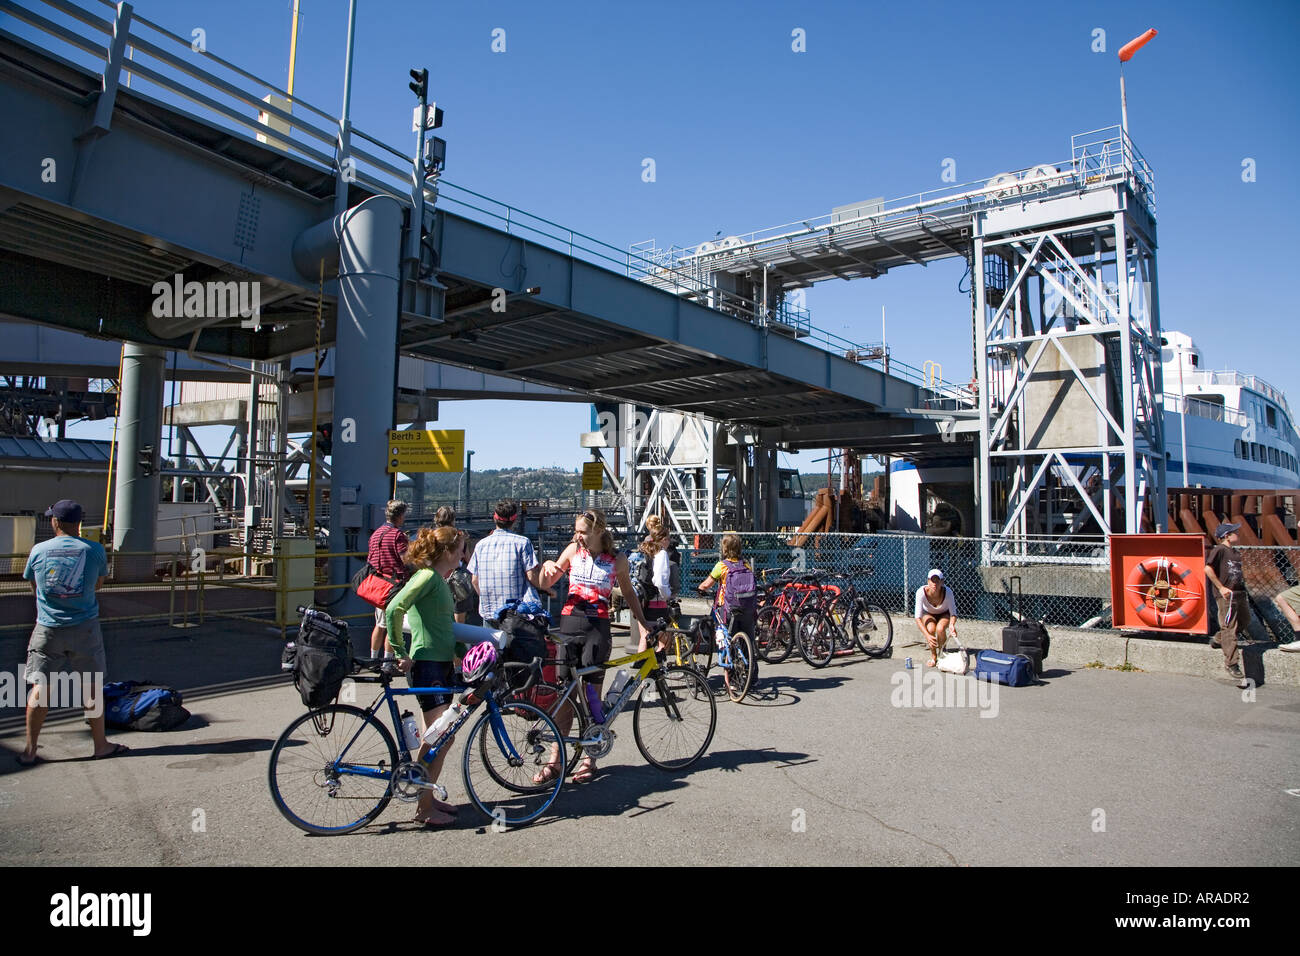 Cyclists and foot passengers waiting to leave on the BC Ferry at Horseshoe Bay Nanaimo Vancouver island Canada - Stock Image